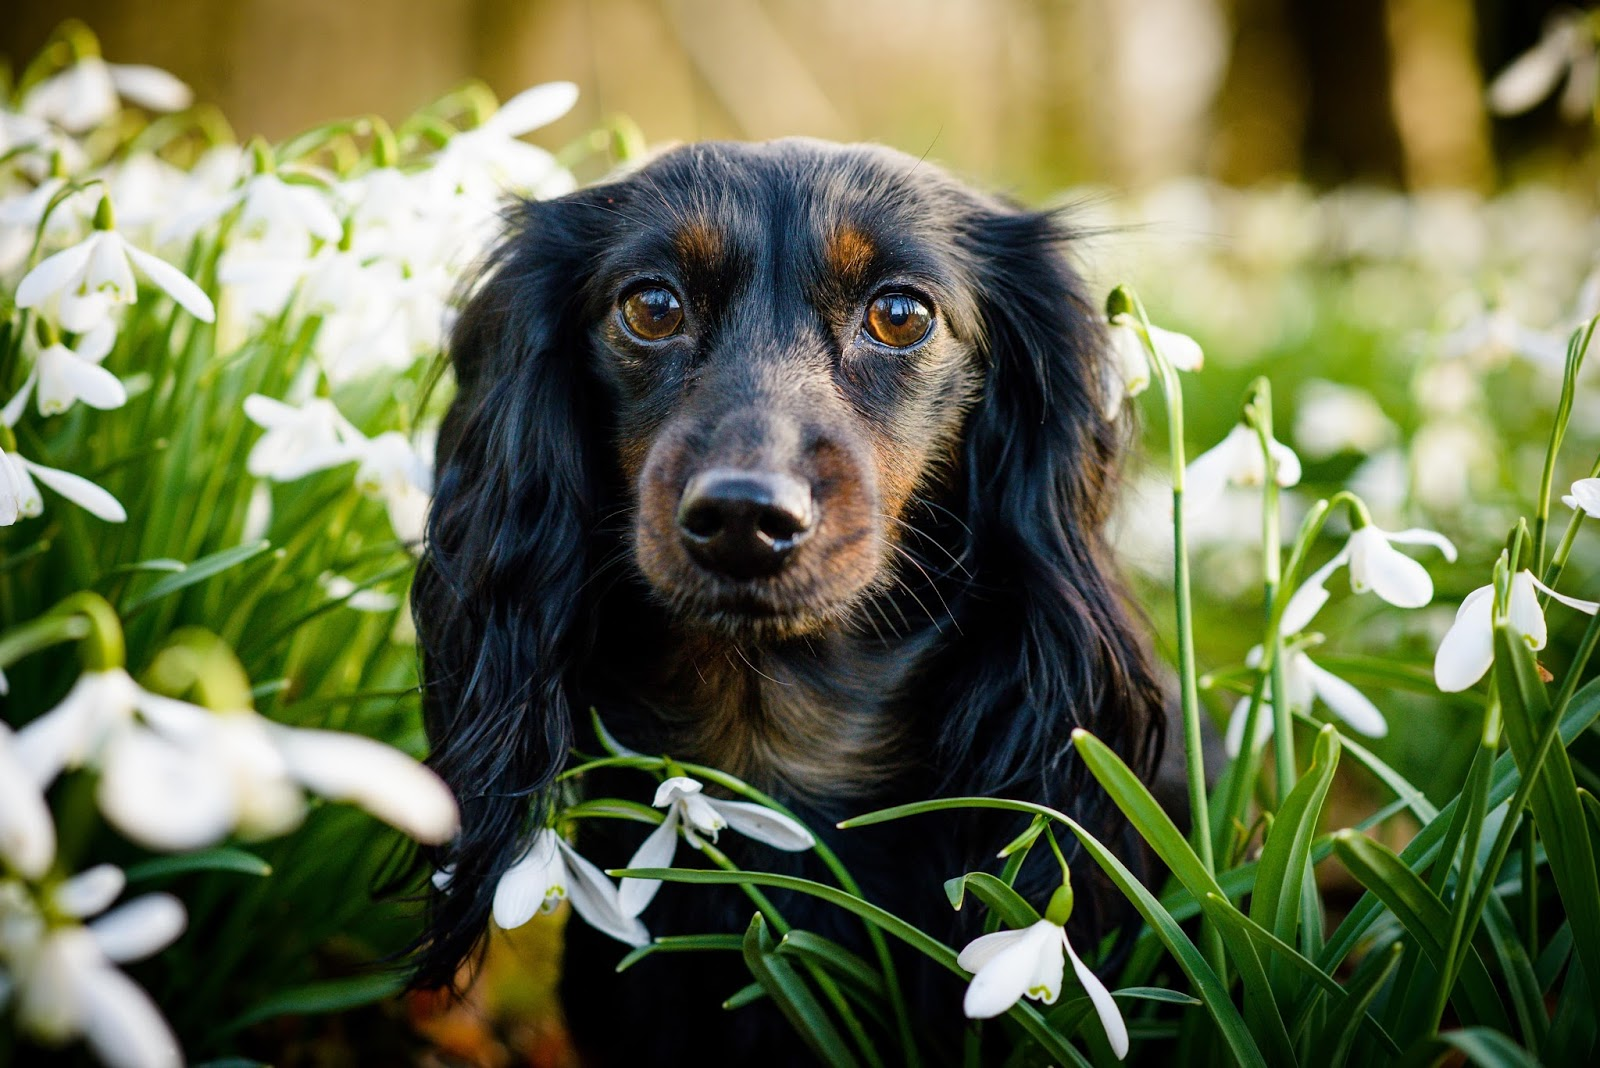 dachshund and cockerspaniel in snowdrops in golden hour liquidgrain liquid grain